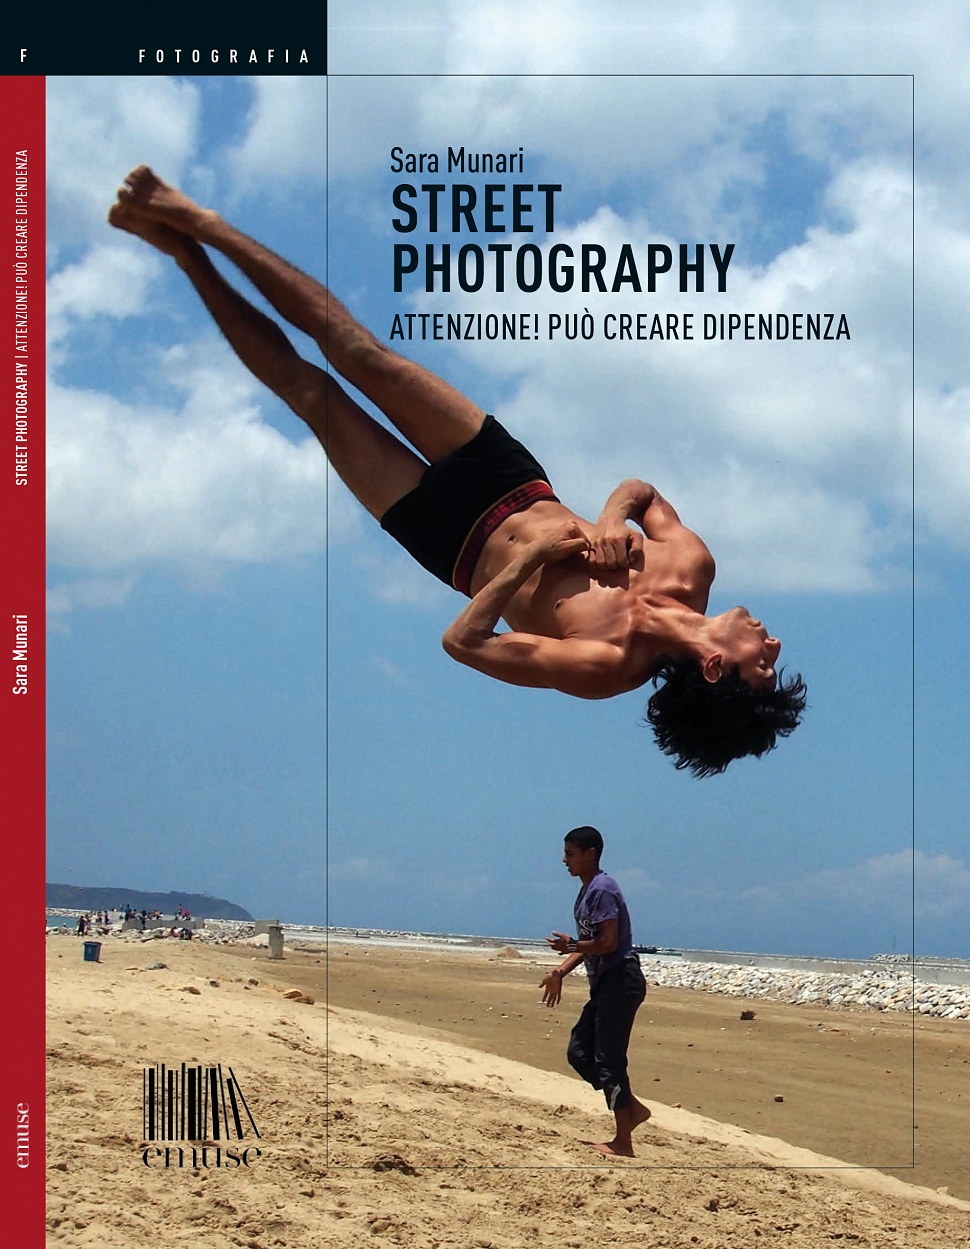 copertina_street_photo.jpg